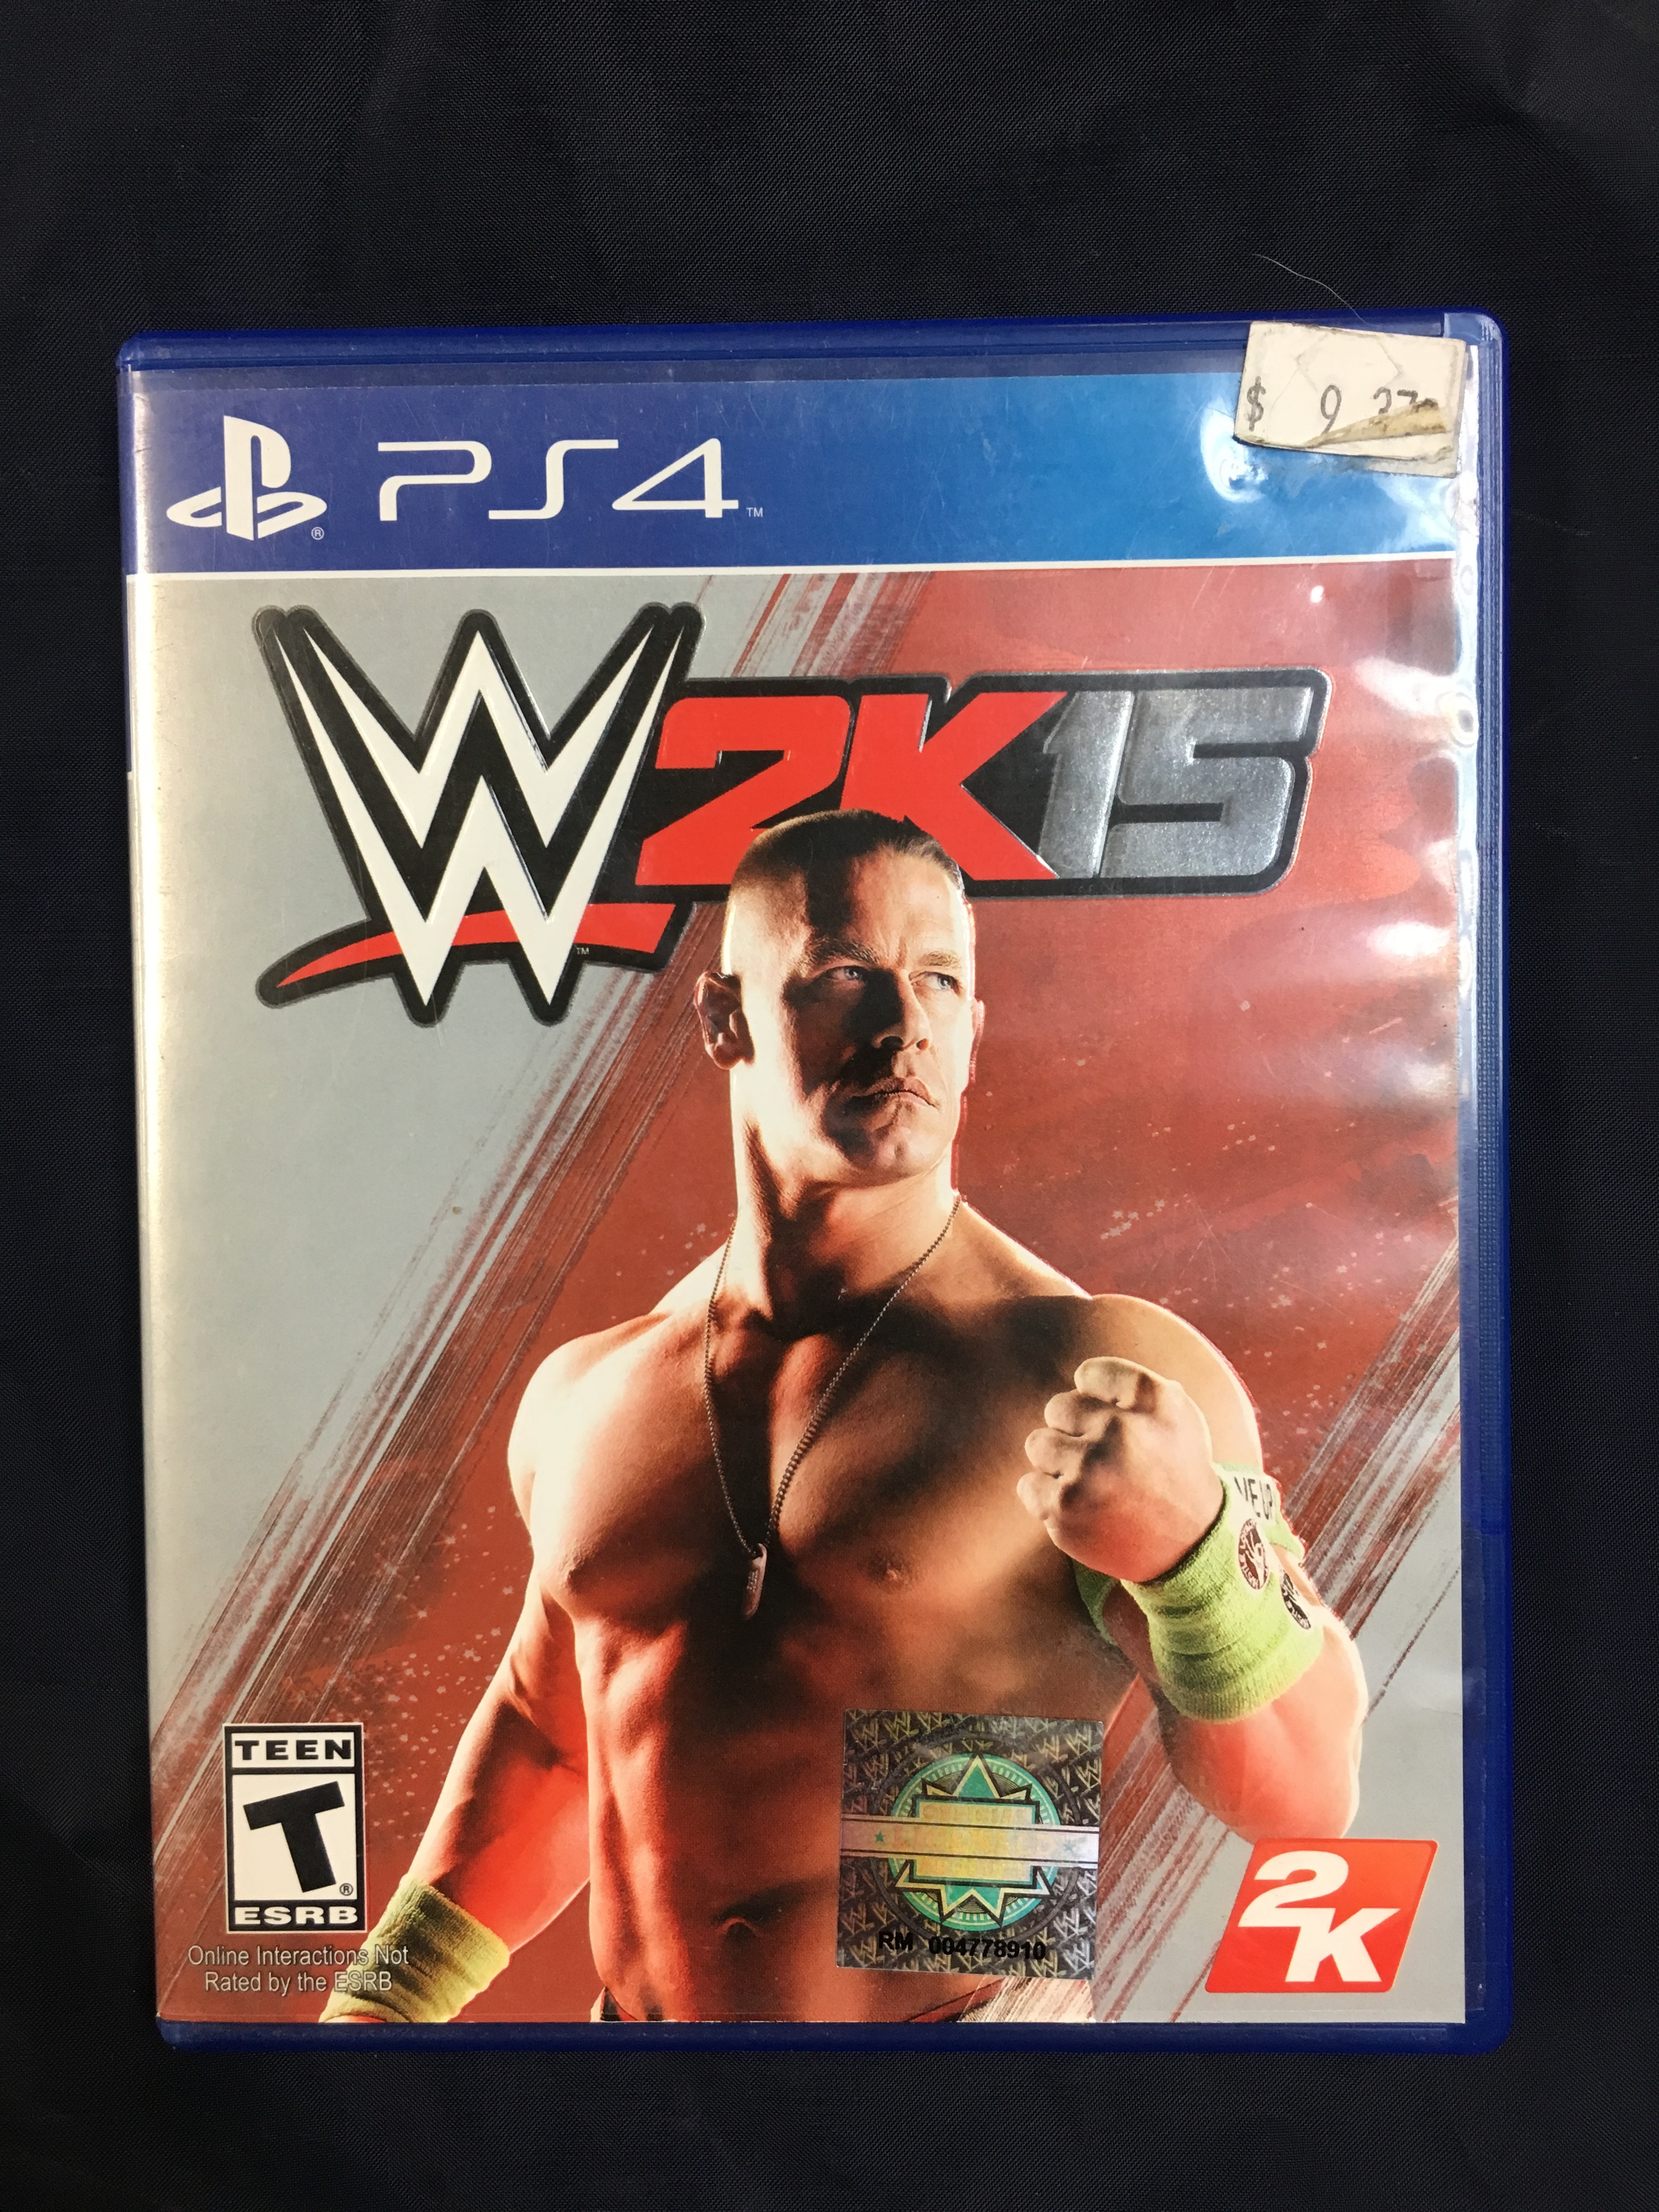 PS4 GAME: WWE 2K15